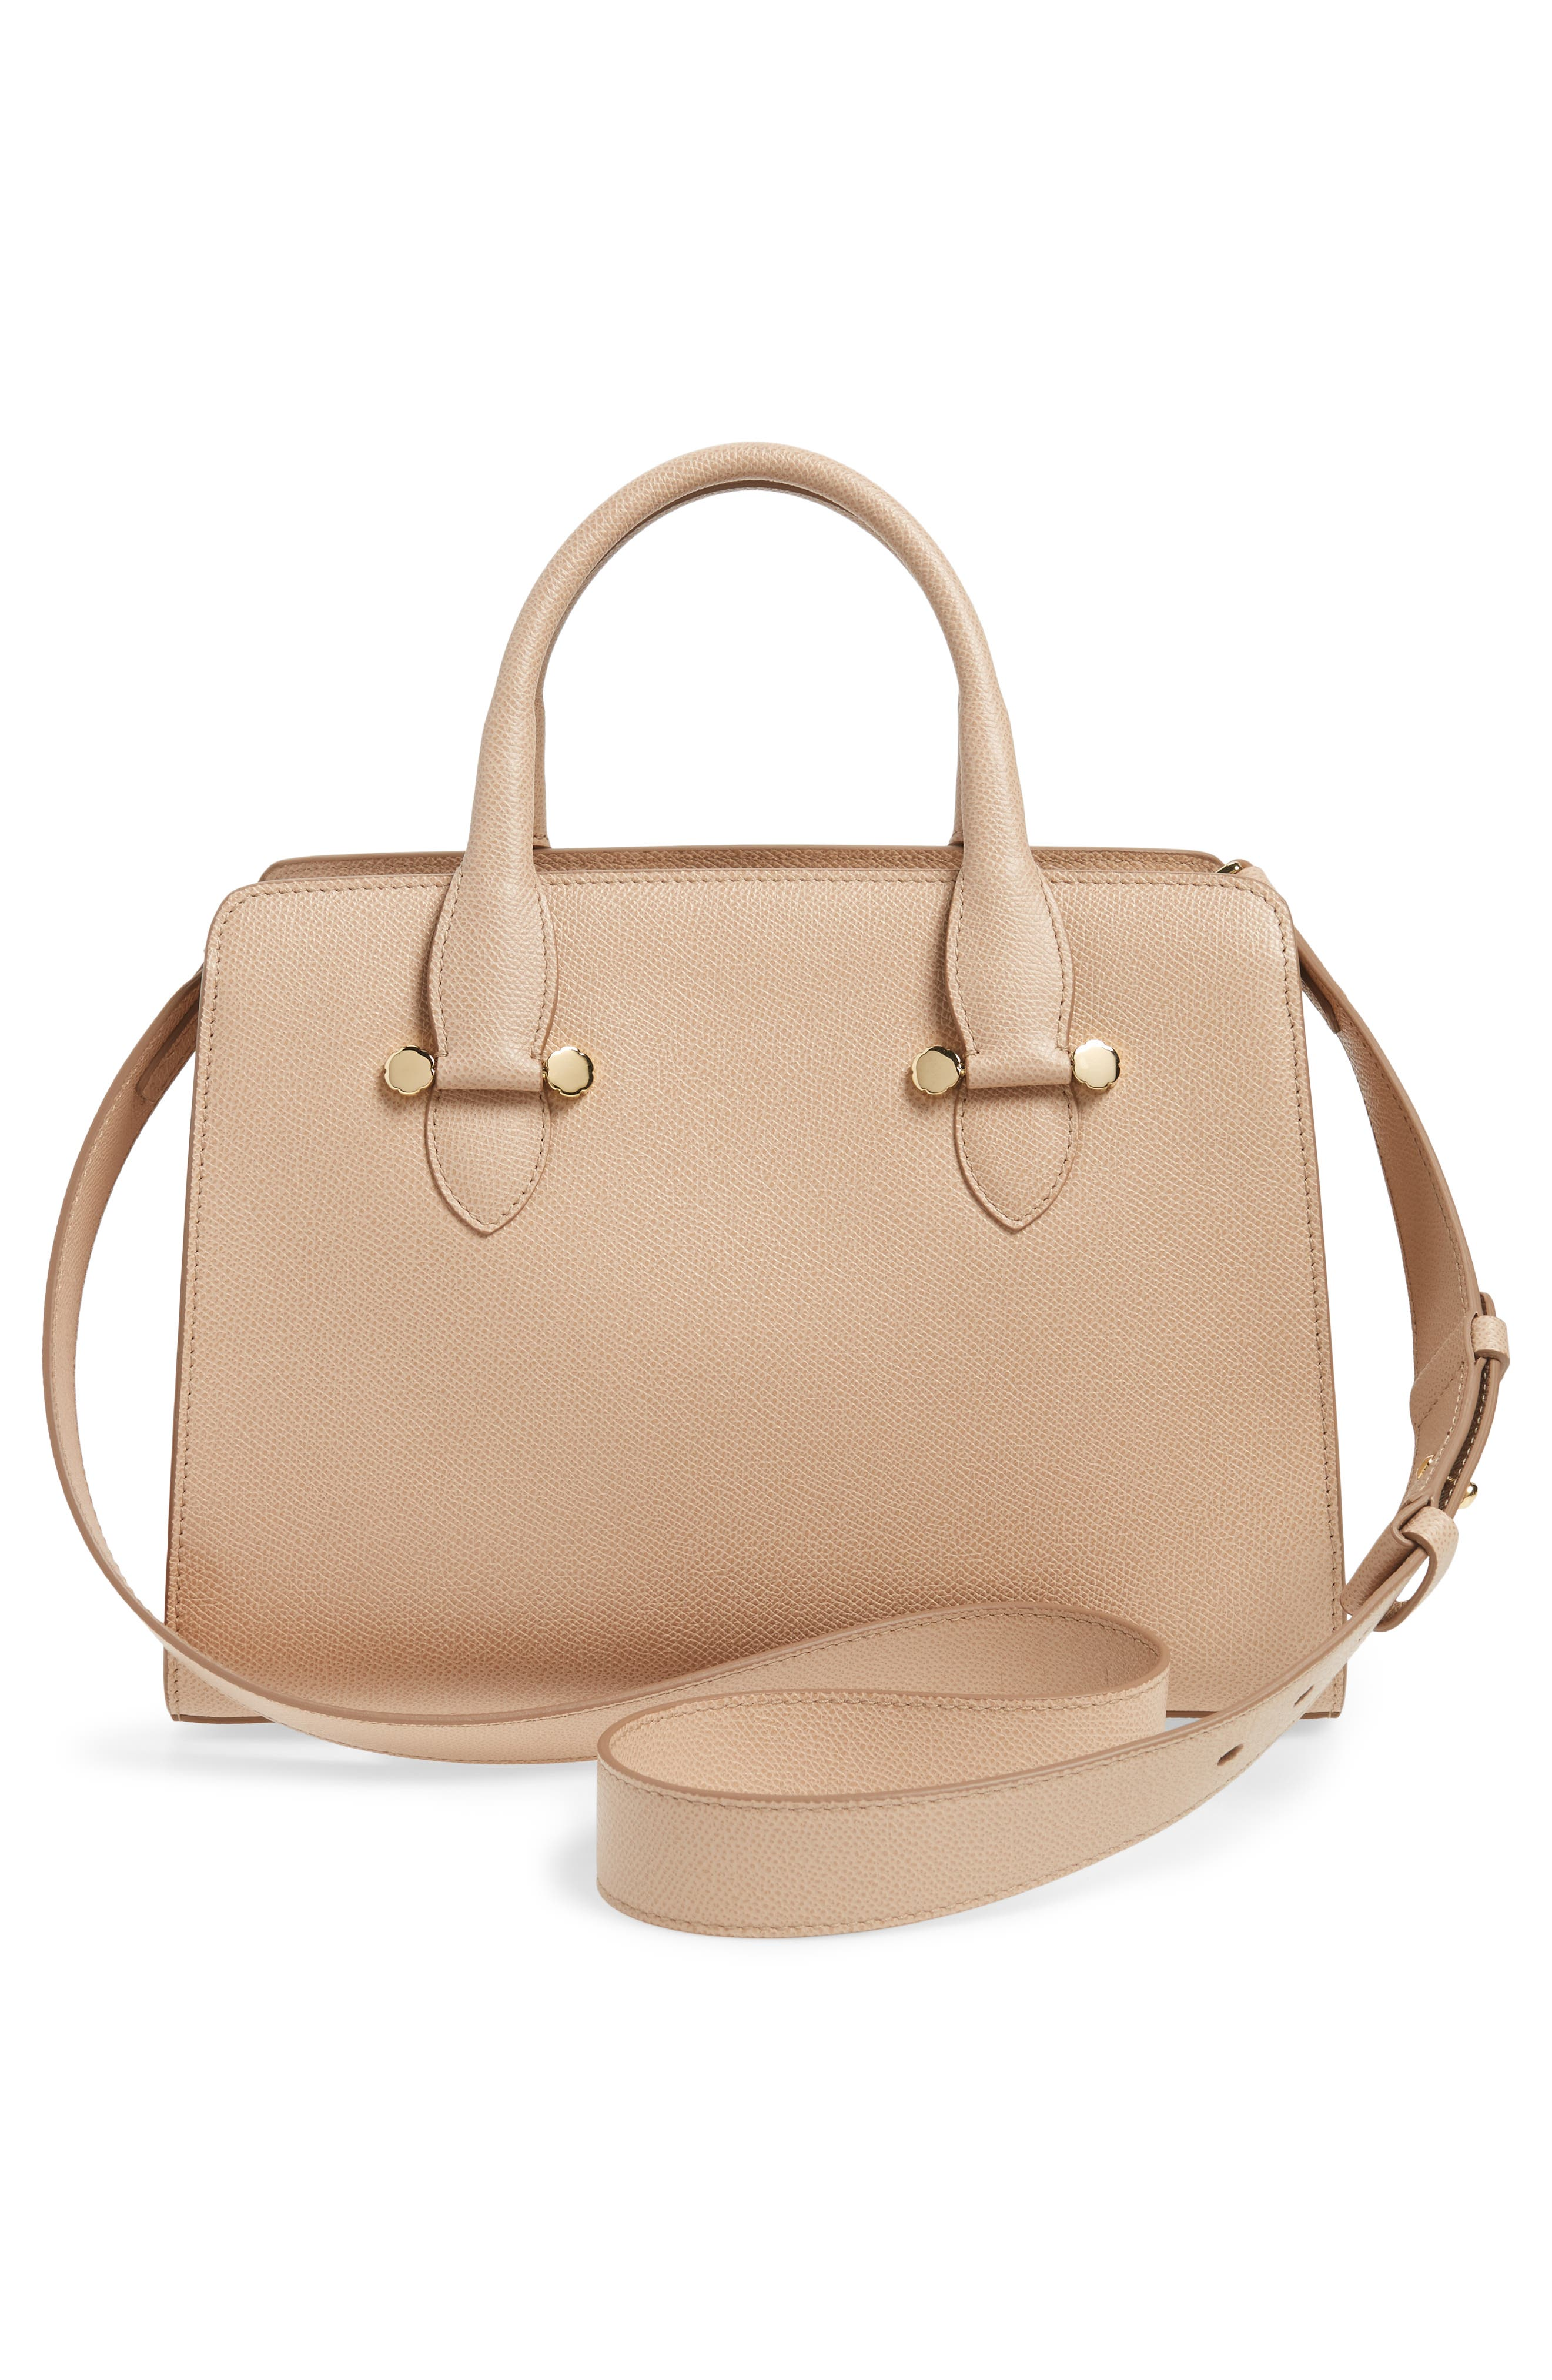 Small Today Leather Satchel,                             Alternate thumbnail 3, color,                             Almond/ Sable